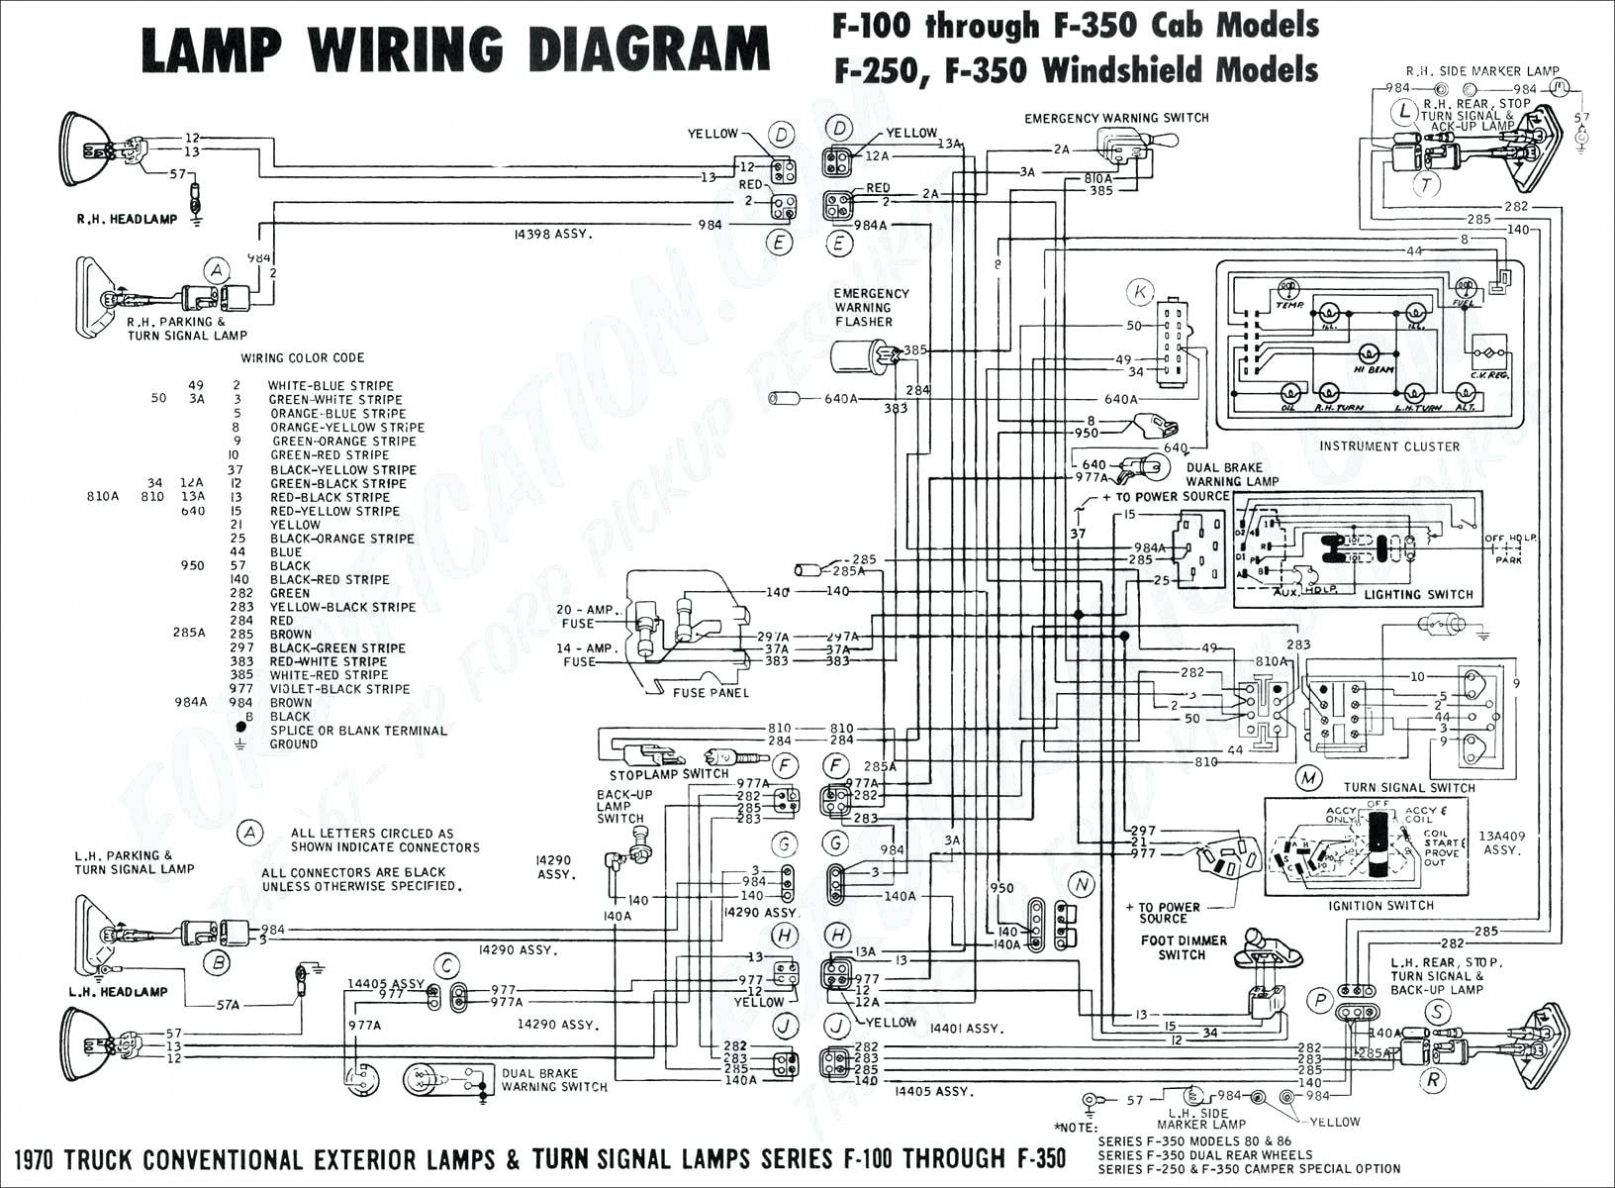 Mack Truck Wiring Diagrams Free | Wiring Diagram - Mack Truck Wiring Diagram Free Download